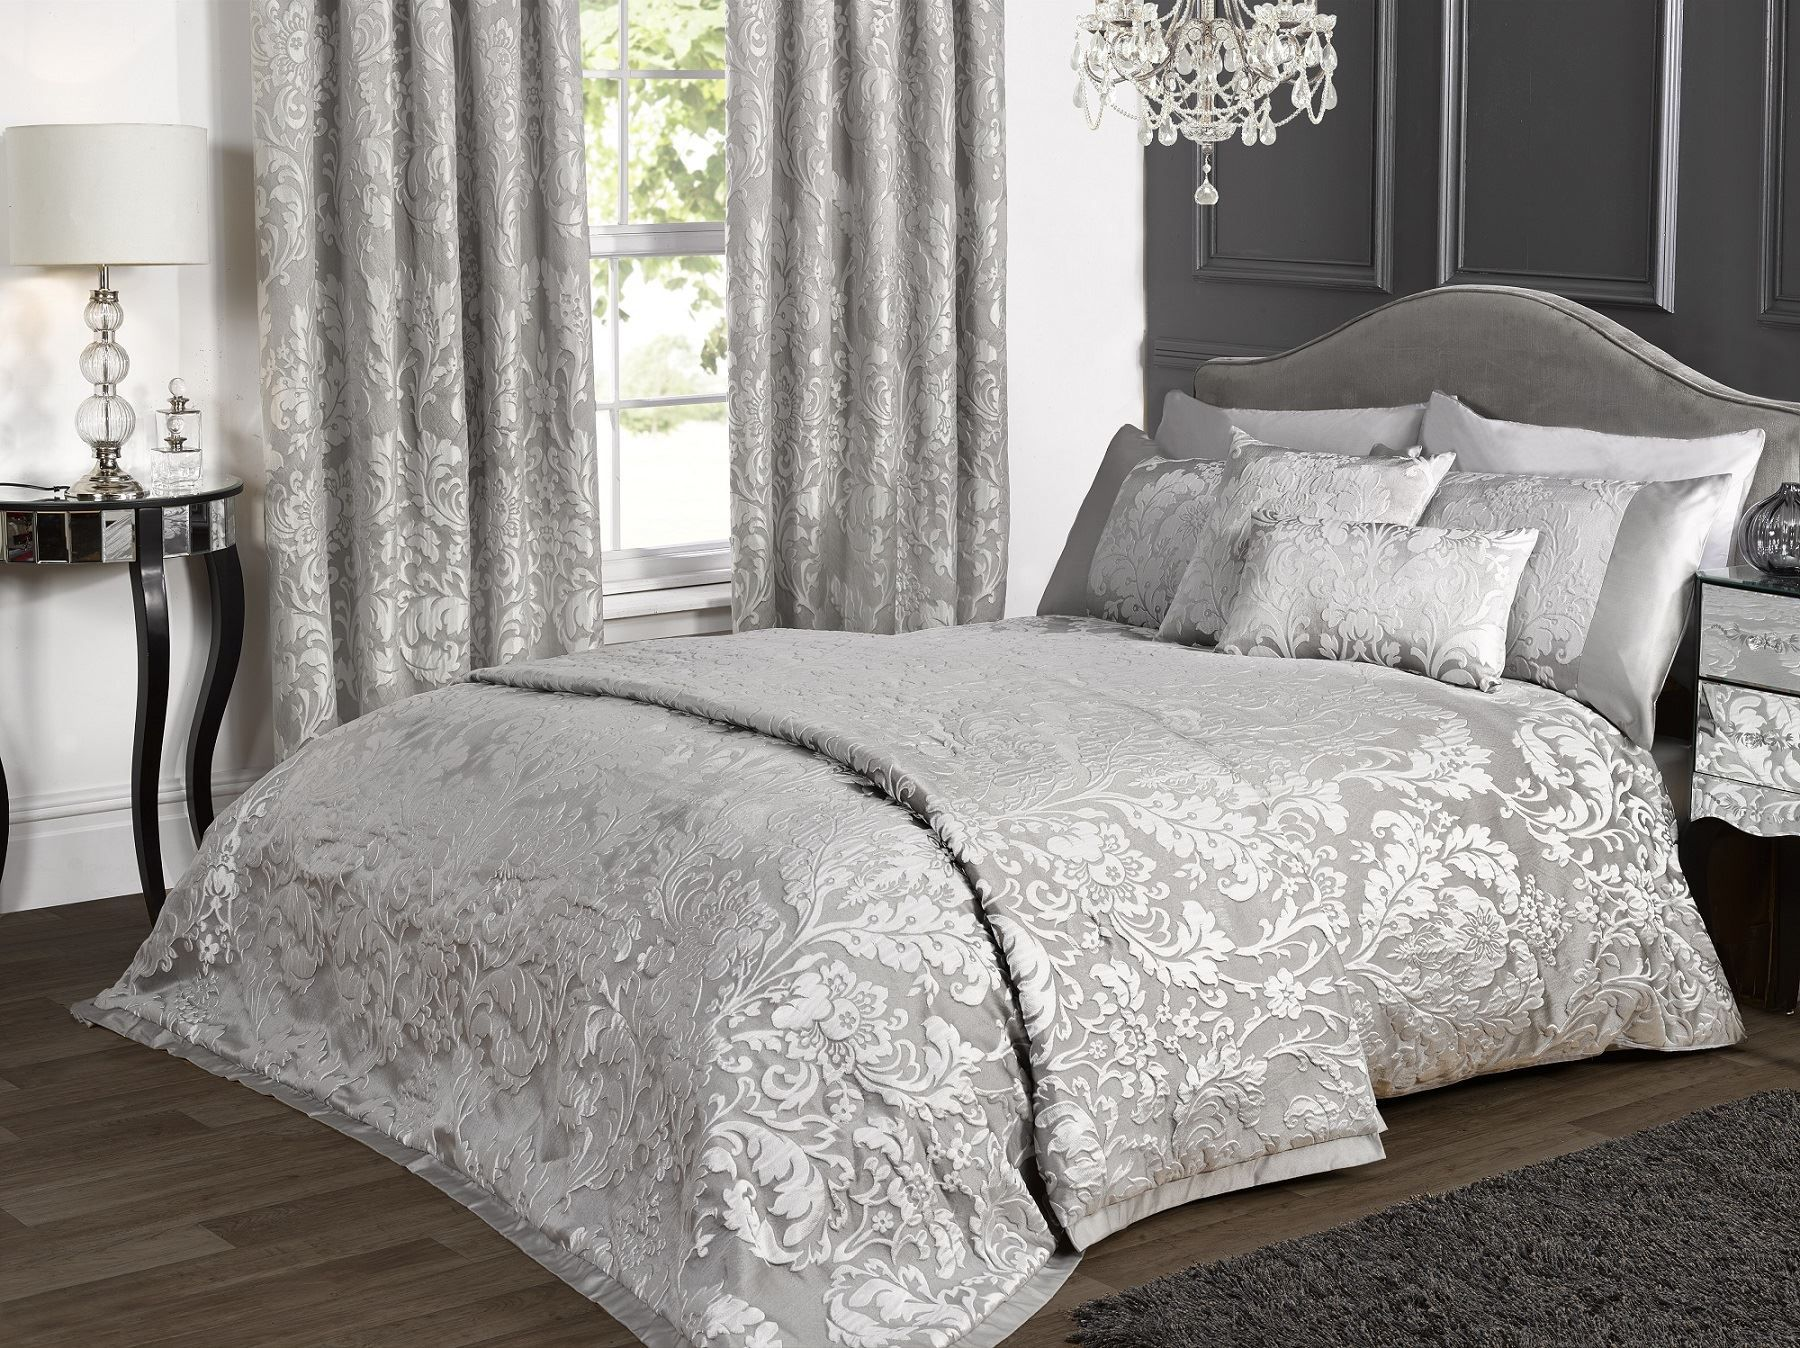 Details About Marston Damask Duvet Cover Embossed Floral